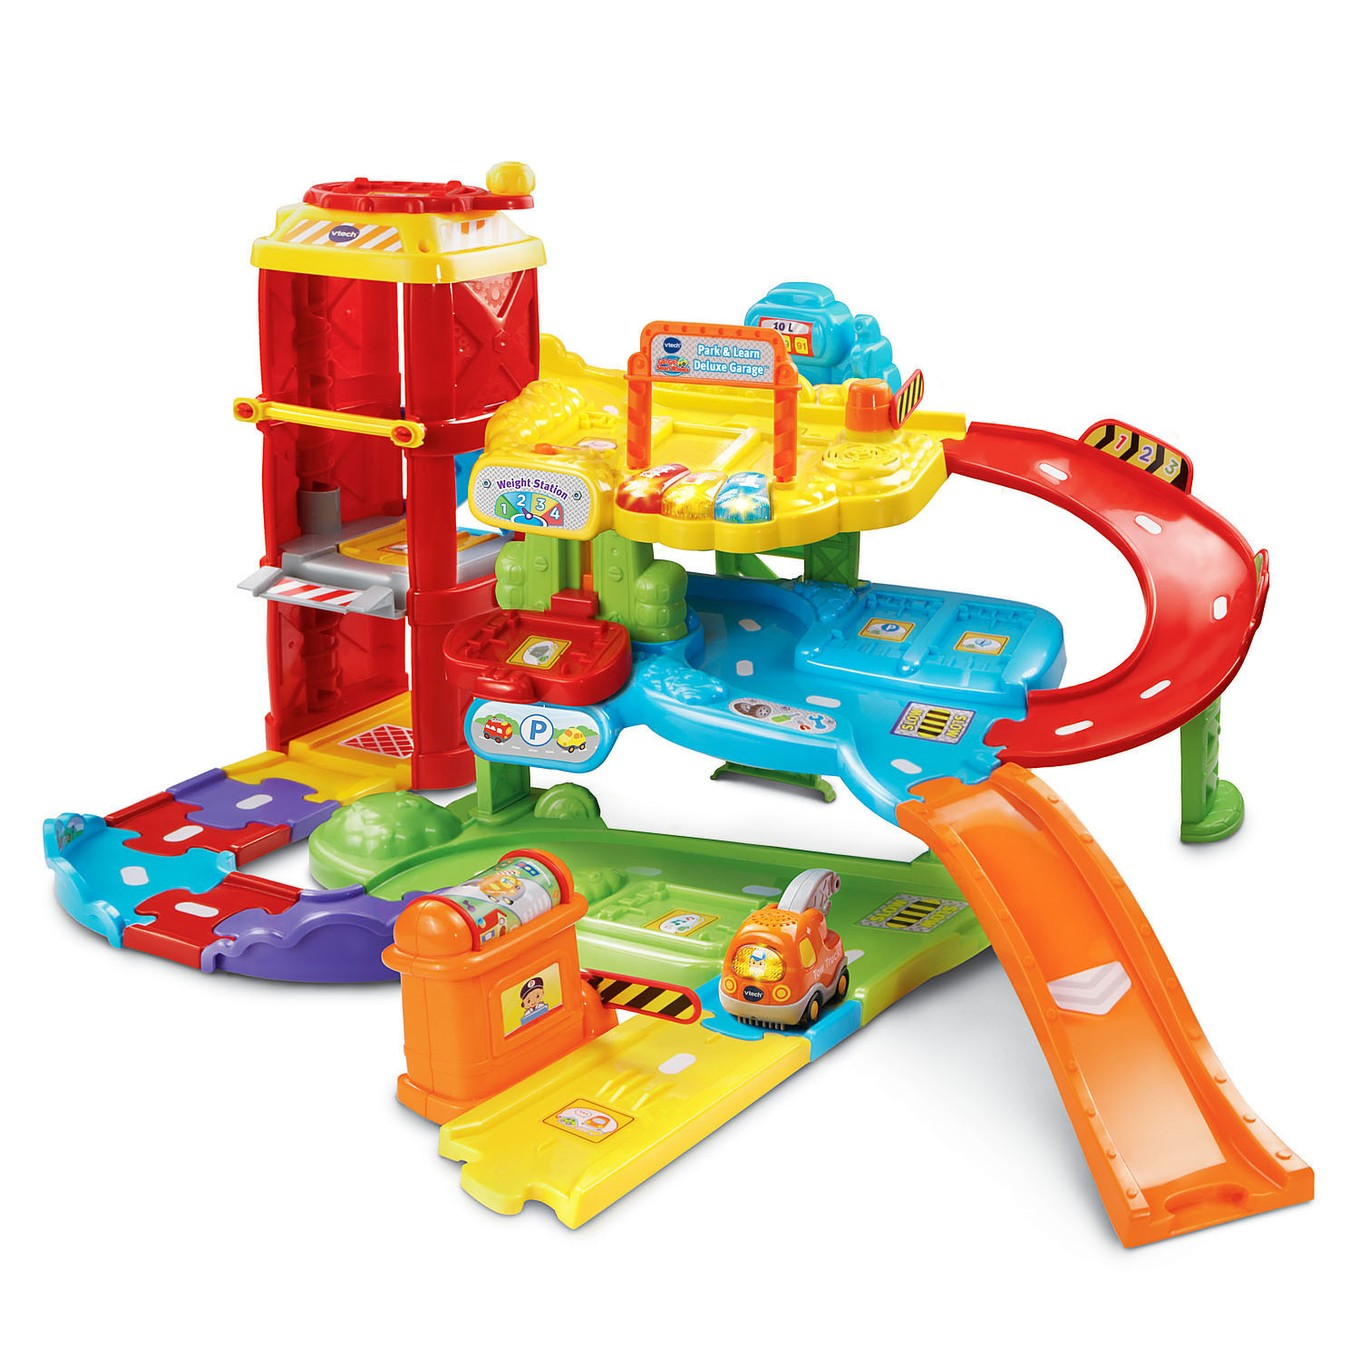 Go Go Smart Wheels 174 Park Amp Learn Deluxe Garage Vtech 174